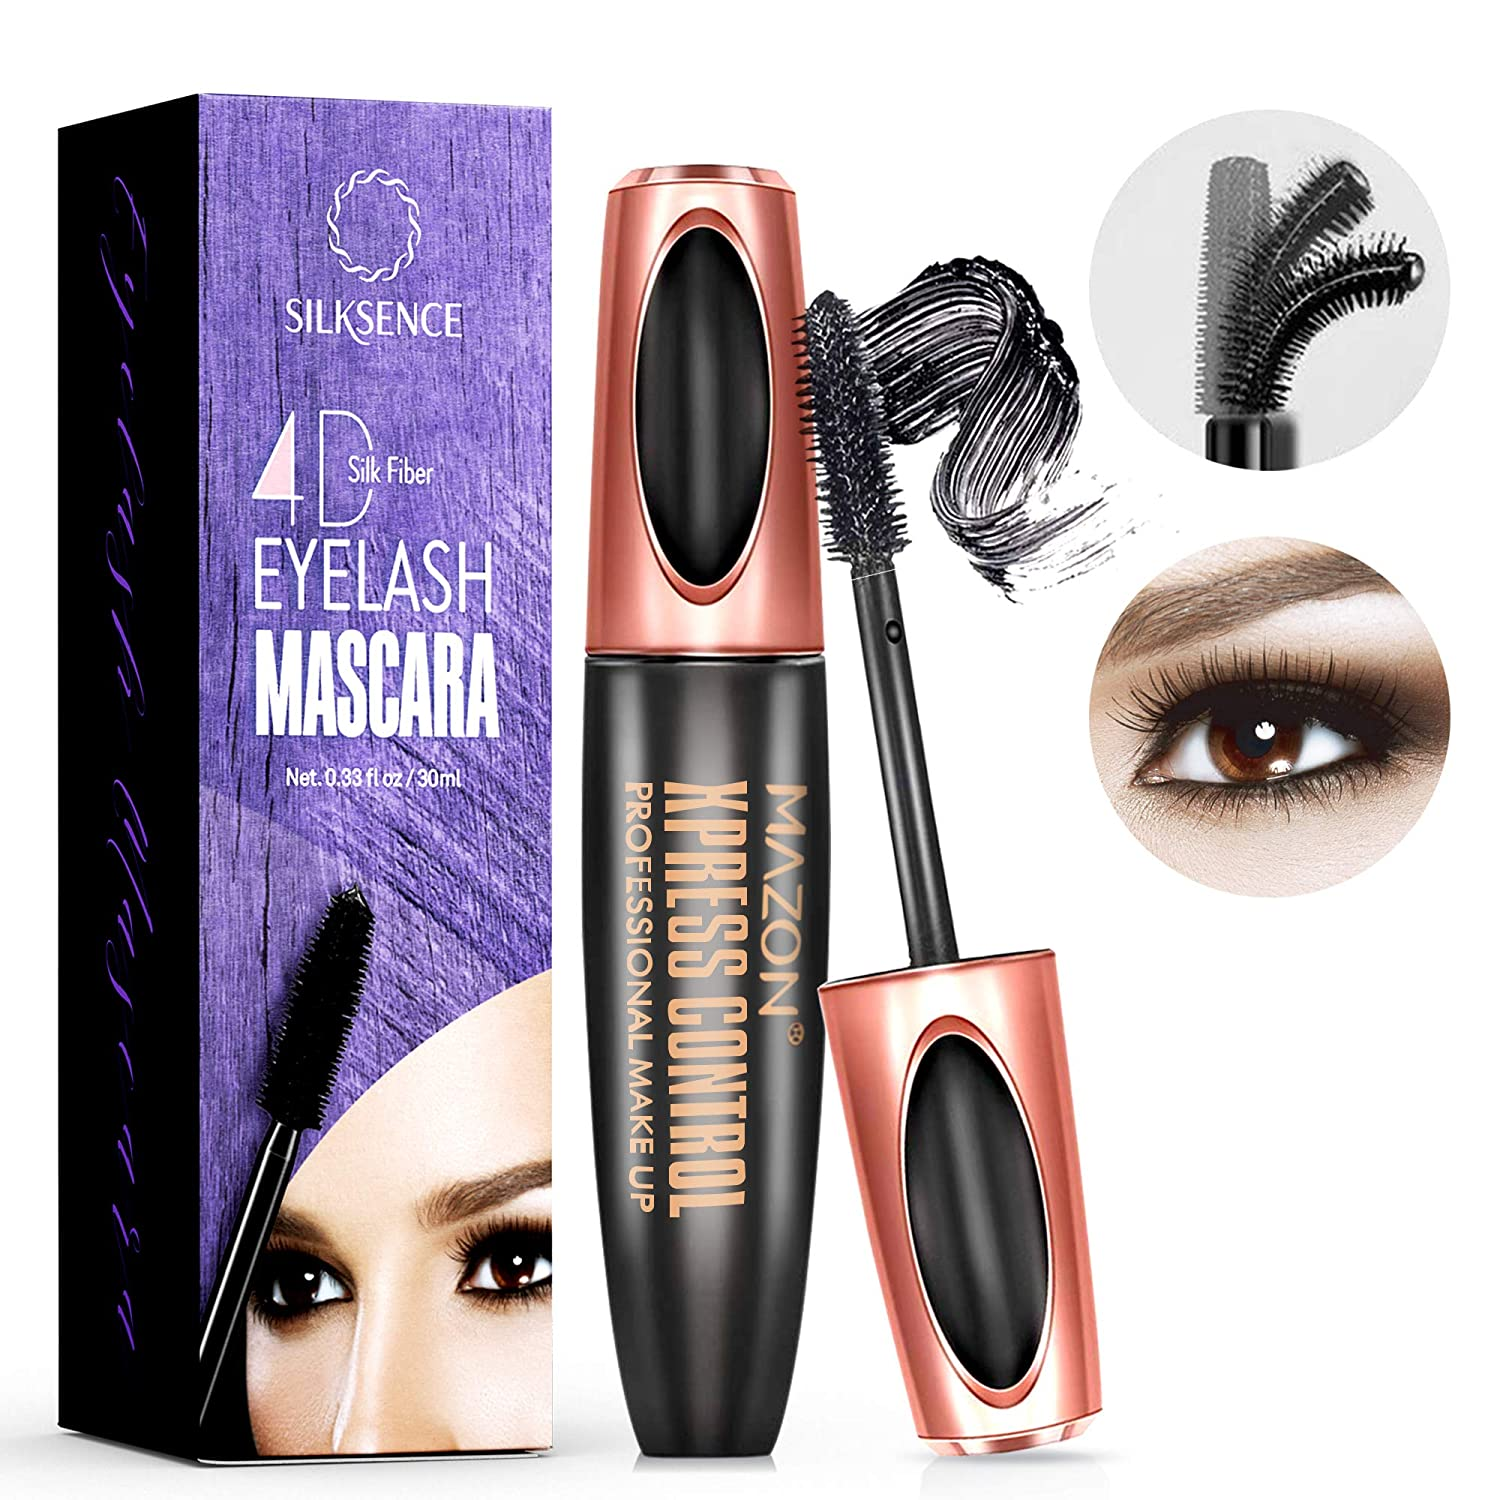 Silksence 4D Silk Fiber Lash Mascara - Waterproof Makeup Eyelash Extension, Sweat proof Long Curling Thick, Long-Lasting, Dramatic Extension, Crazy Long Washable (S1)